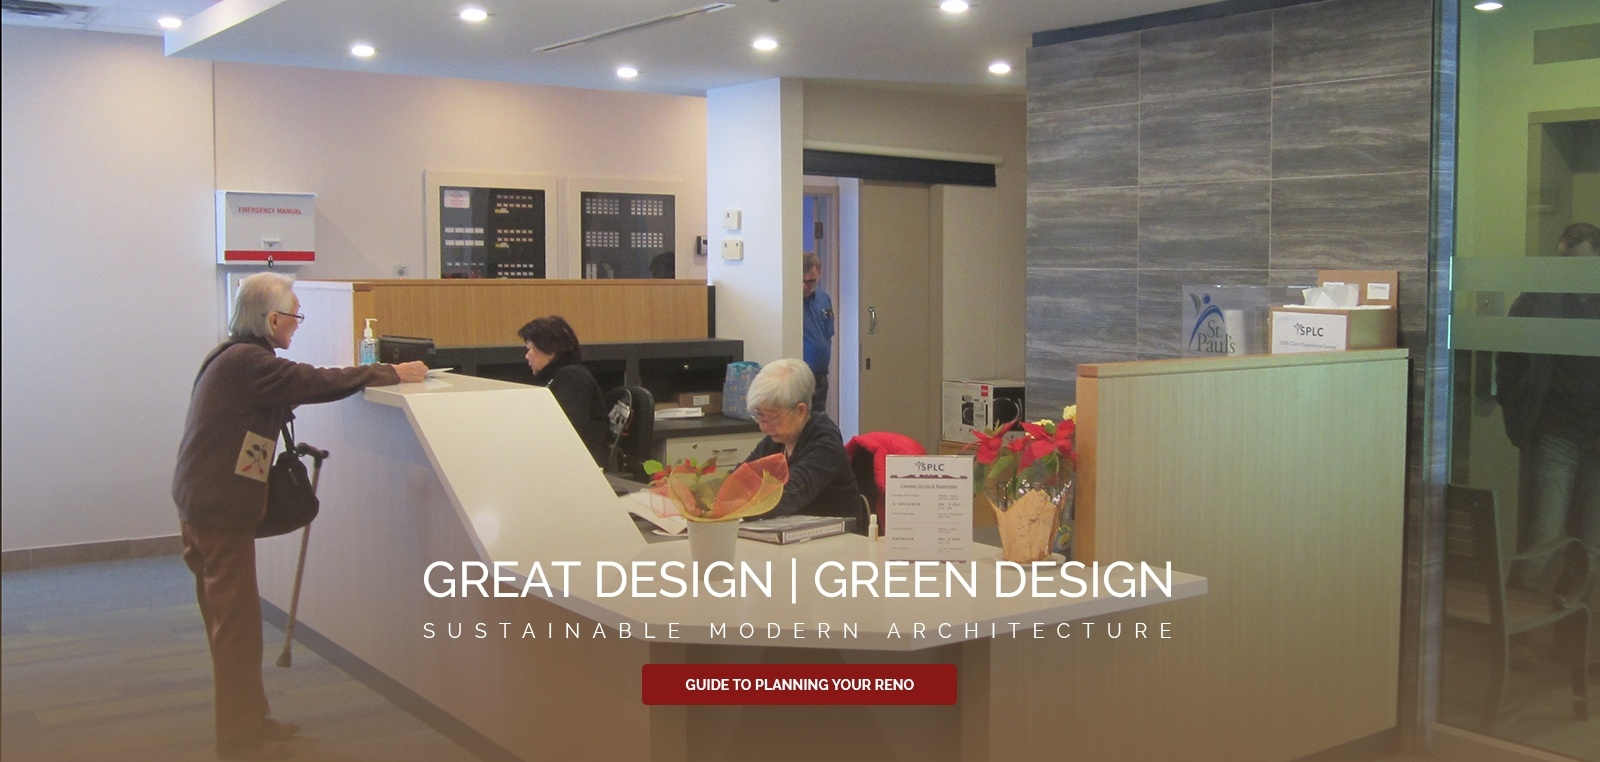 Green Offices Toronto by The Architect Builders Collaborative Inc.